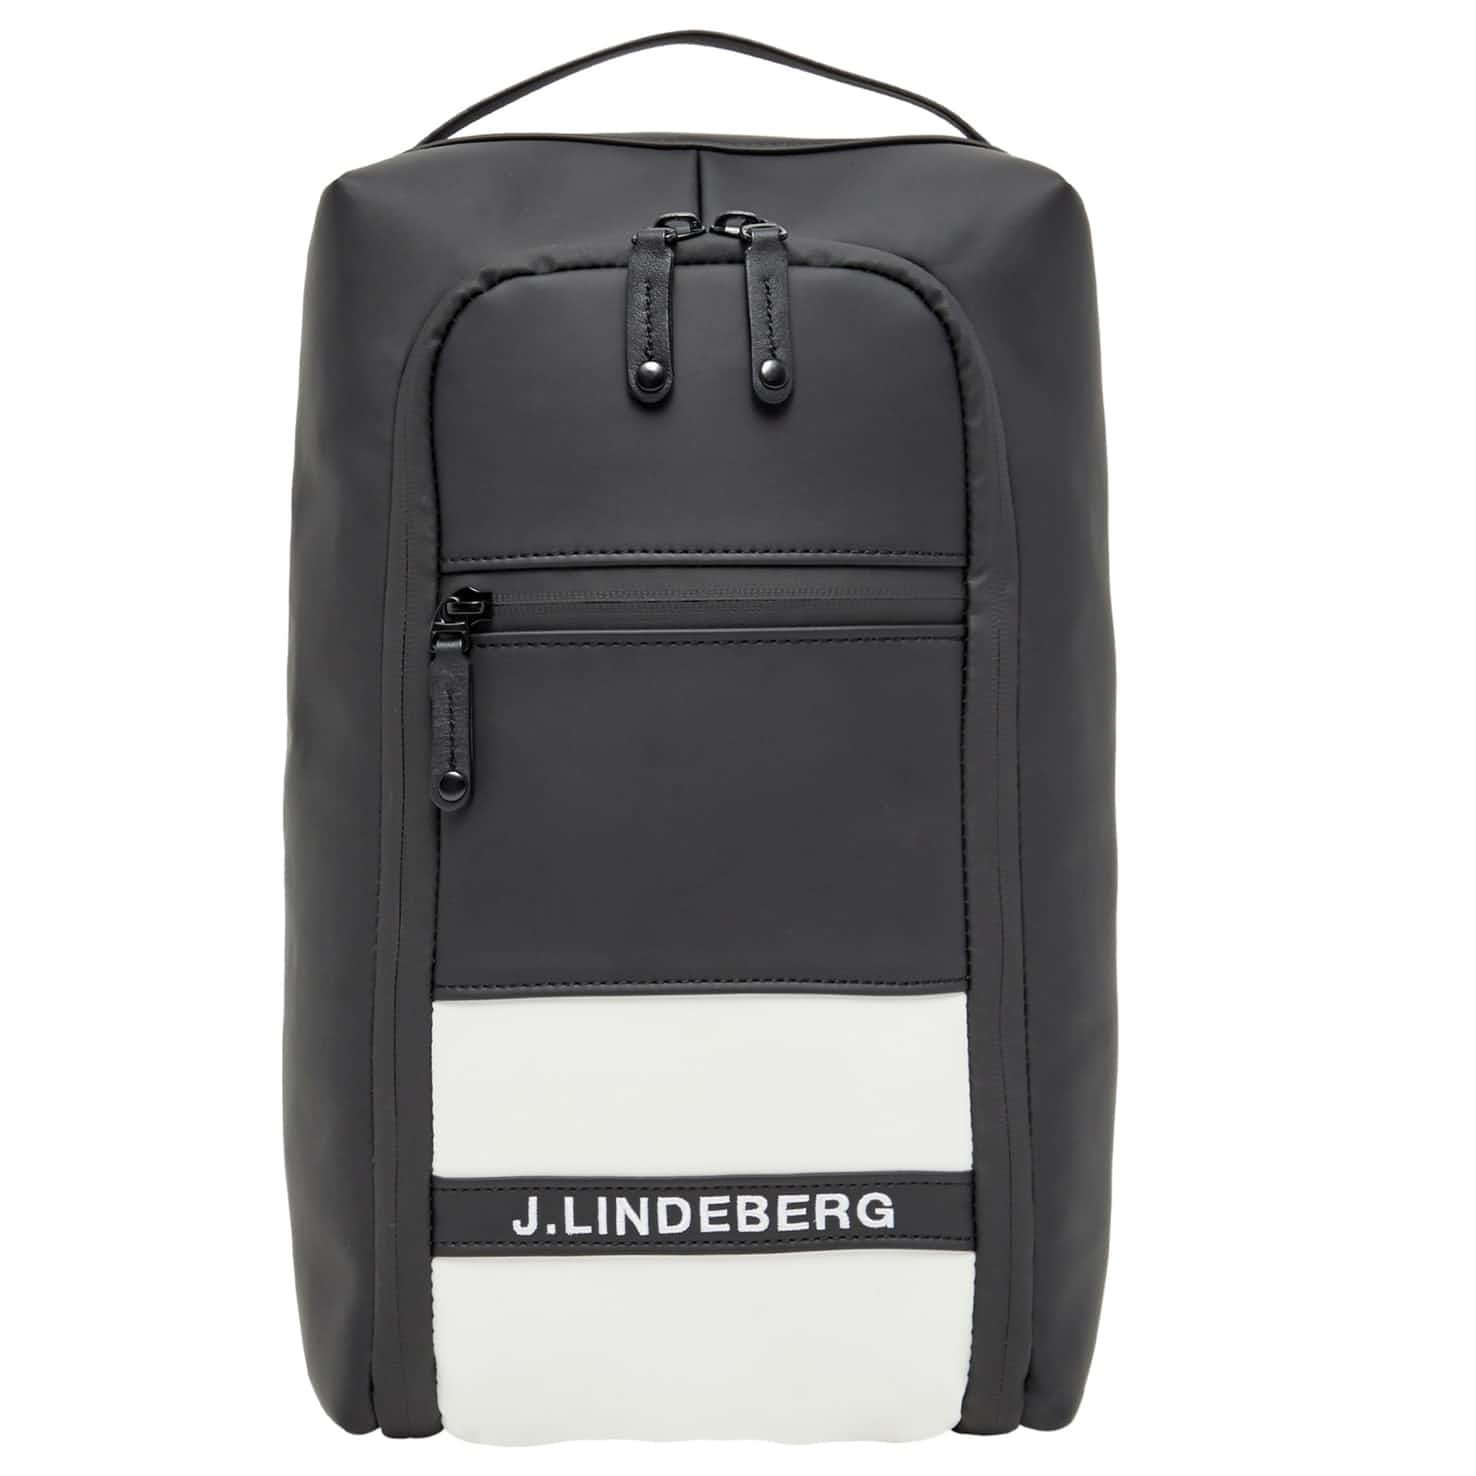 Footwear Bag Synthetic Leather Black - SS20